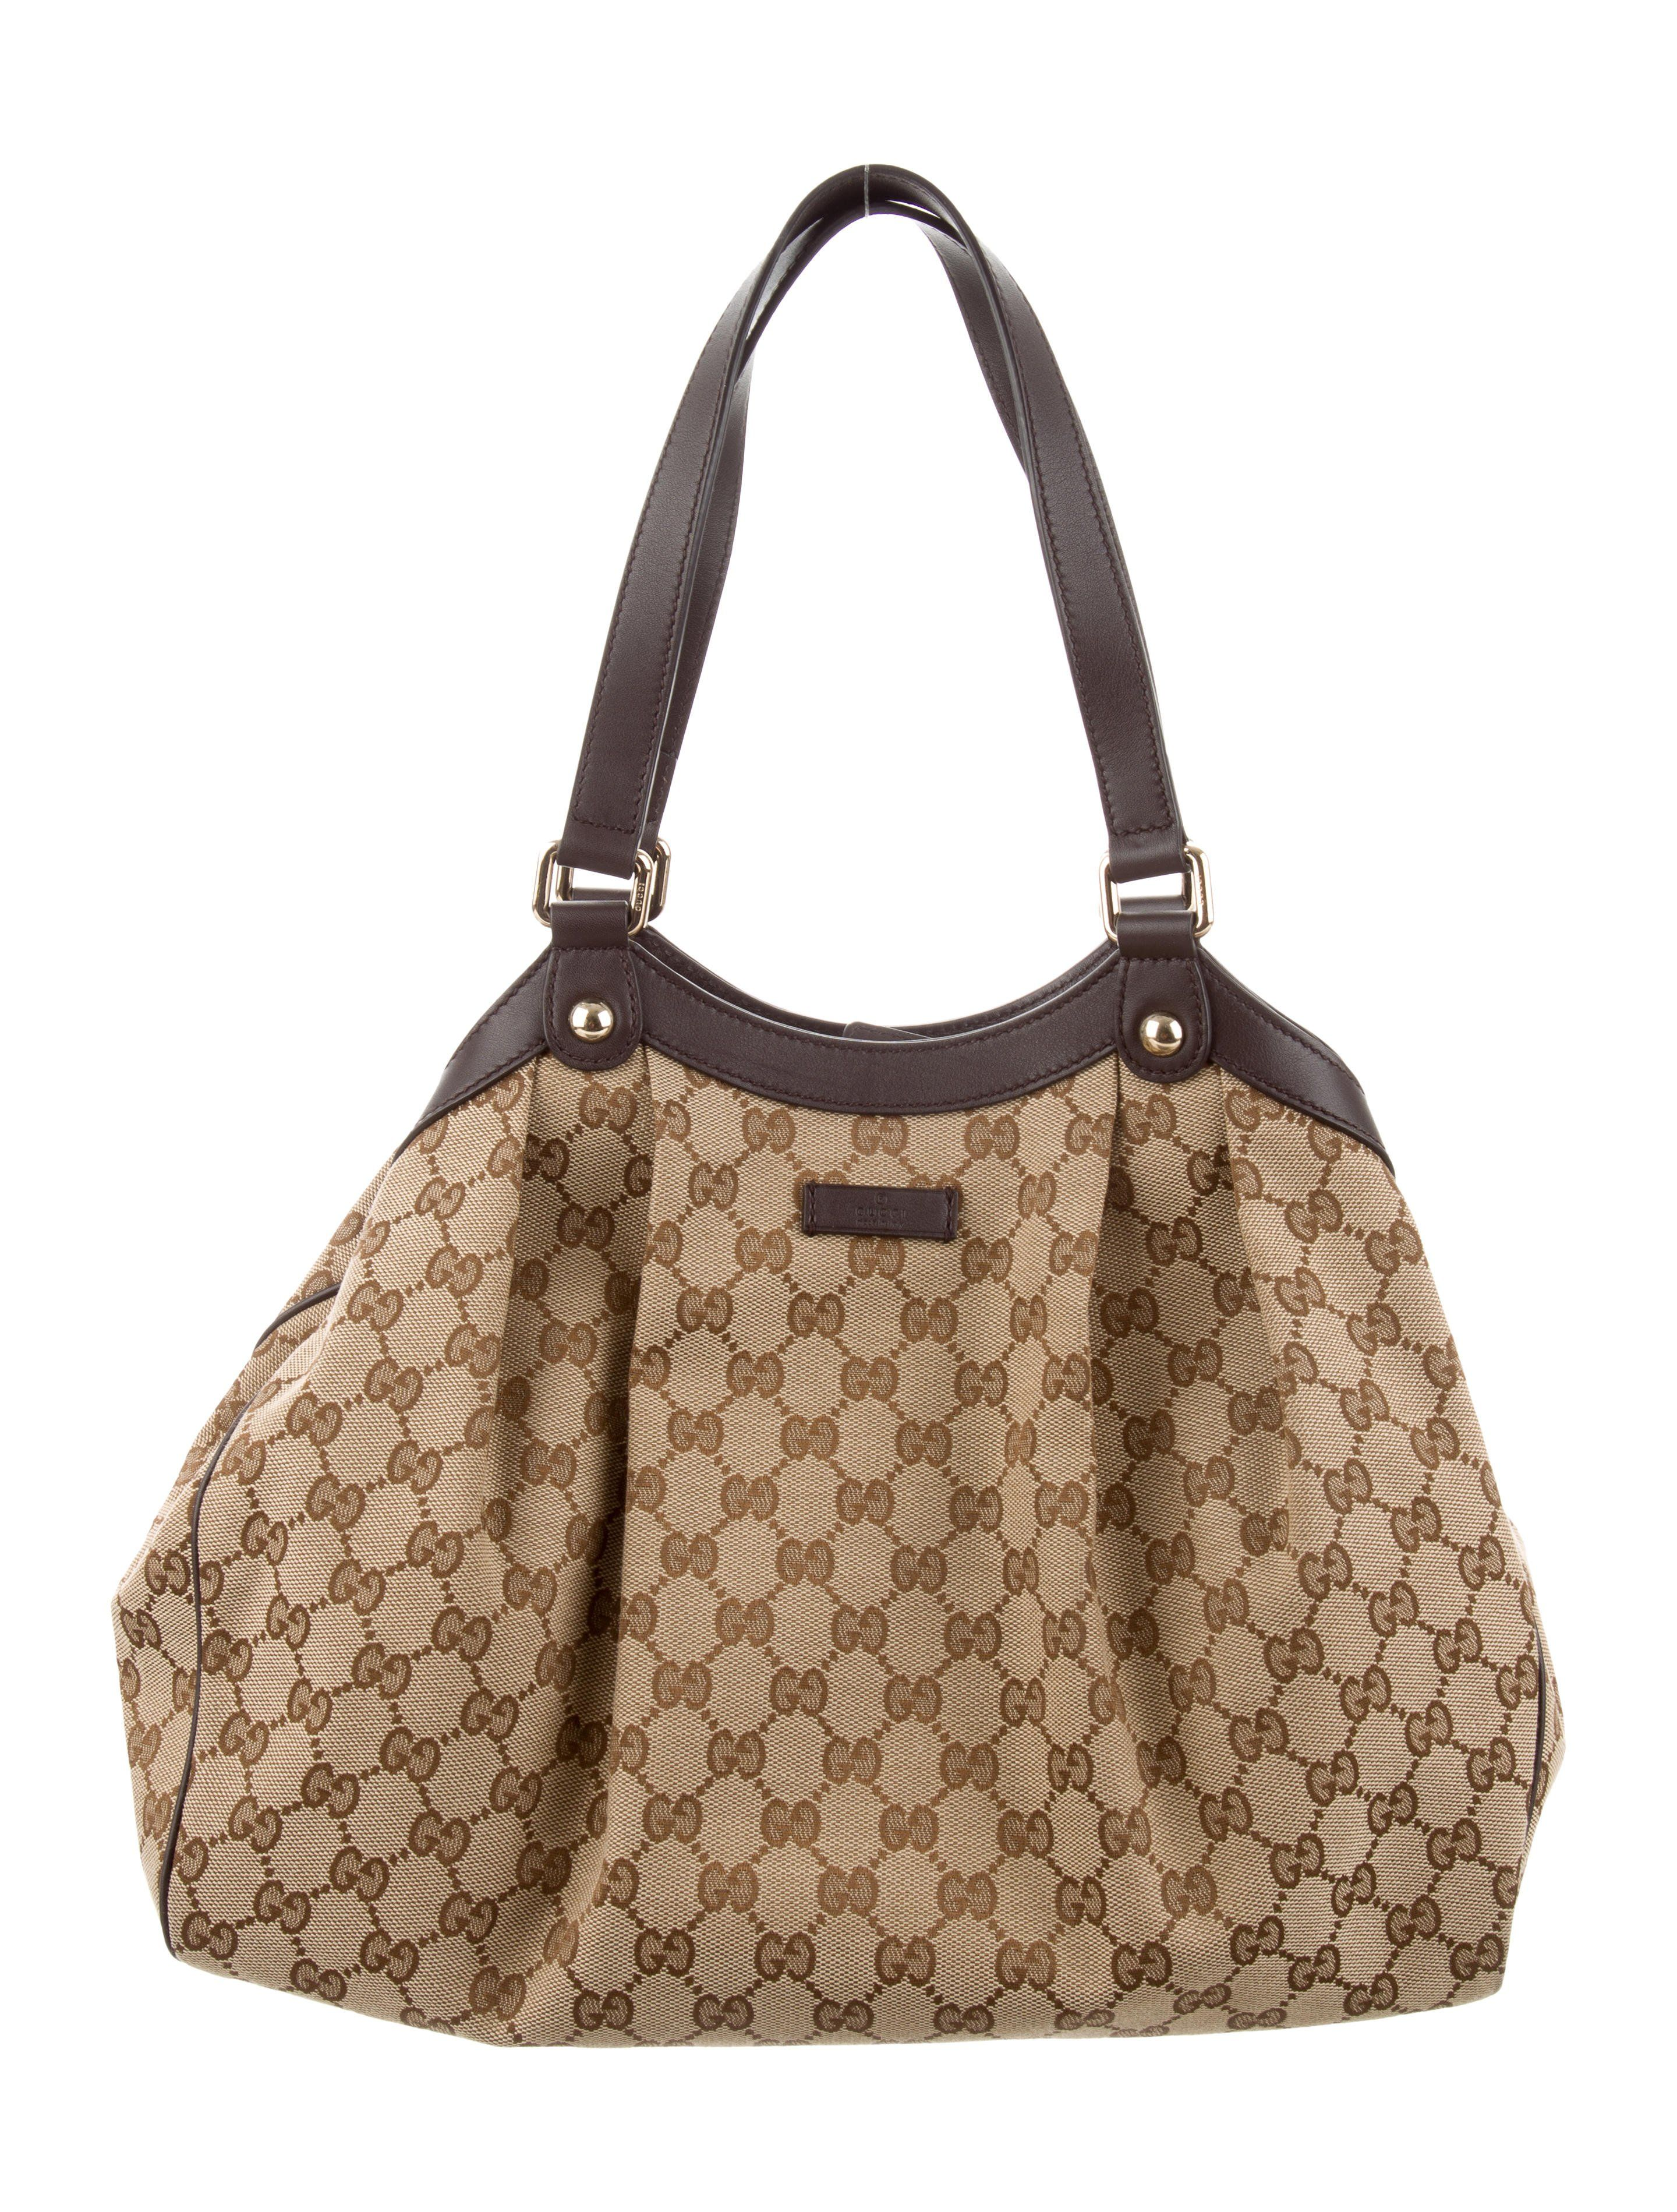 0d6c2afd79c1f0 Bamboo Handle Bag | Style | Bags, Gucci bamboo, Handle